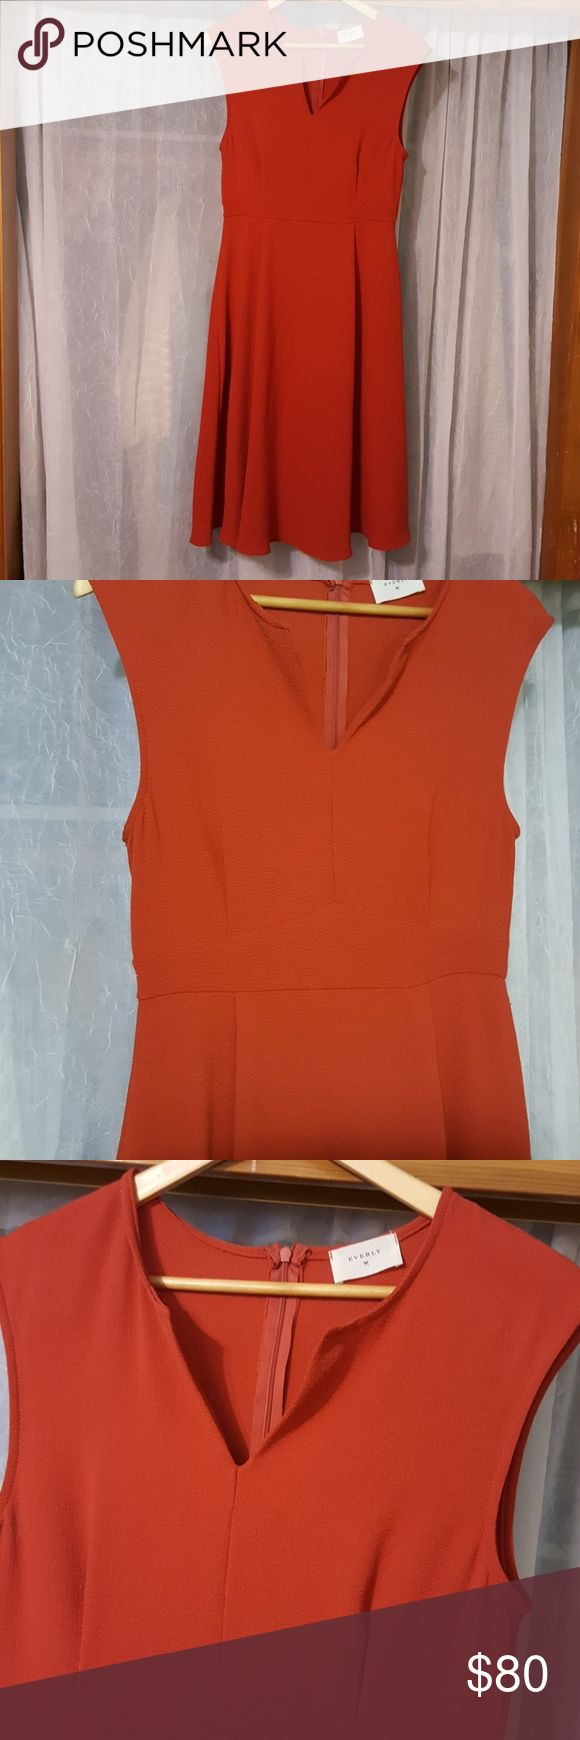 Gorgeous Everly dress Beautiful rust orange color, lined from waist down, 42 length, 17.5 pit to put, slightly stretchy,  excellent condition Everly Dresses